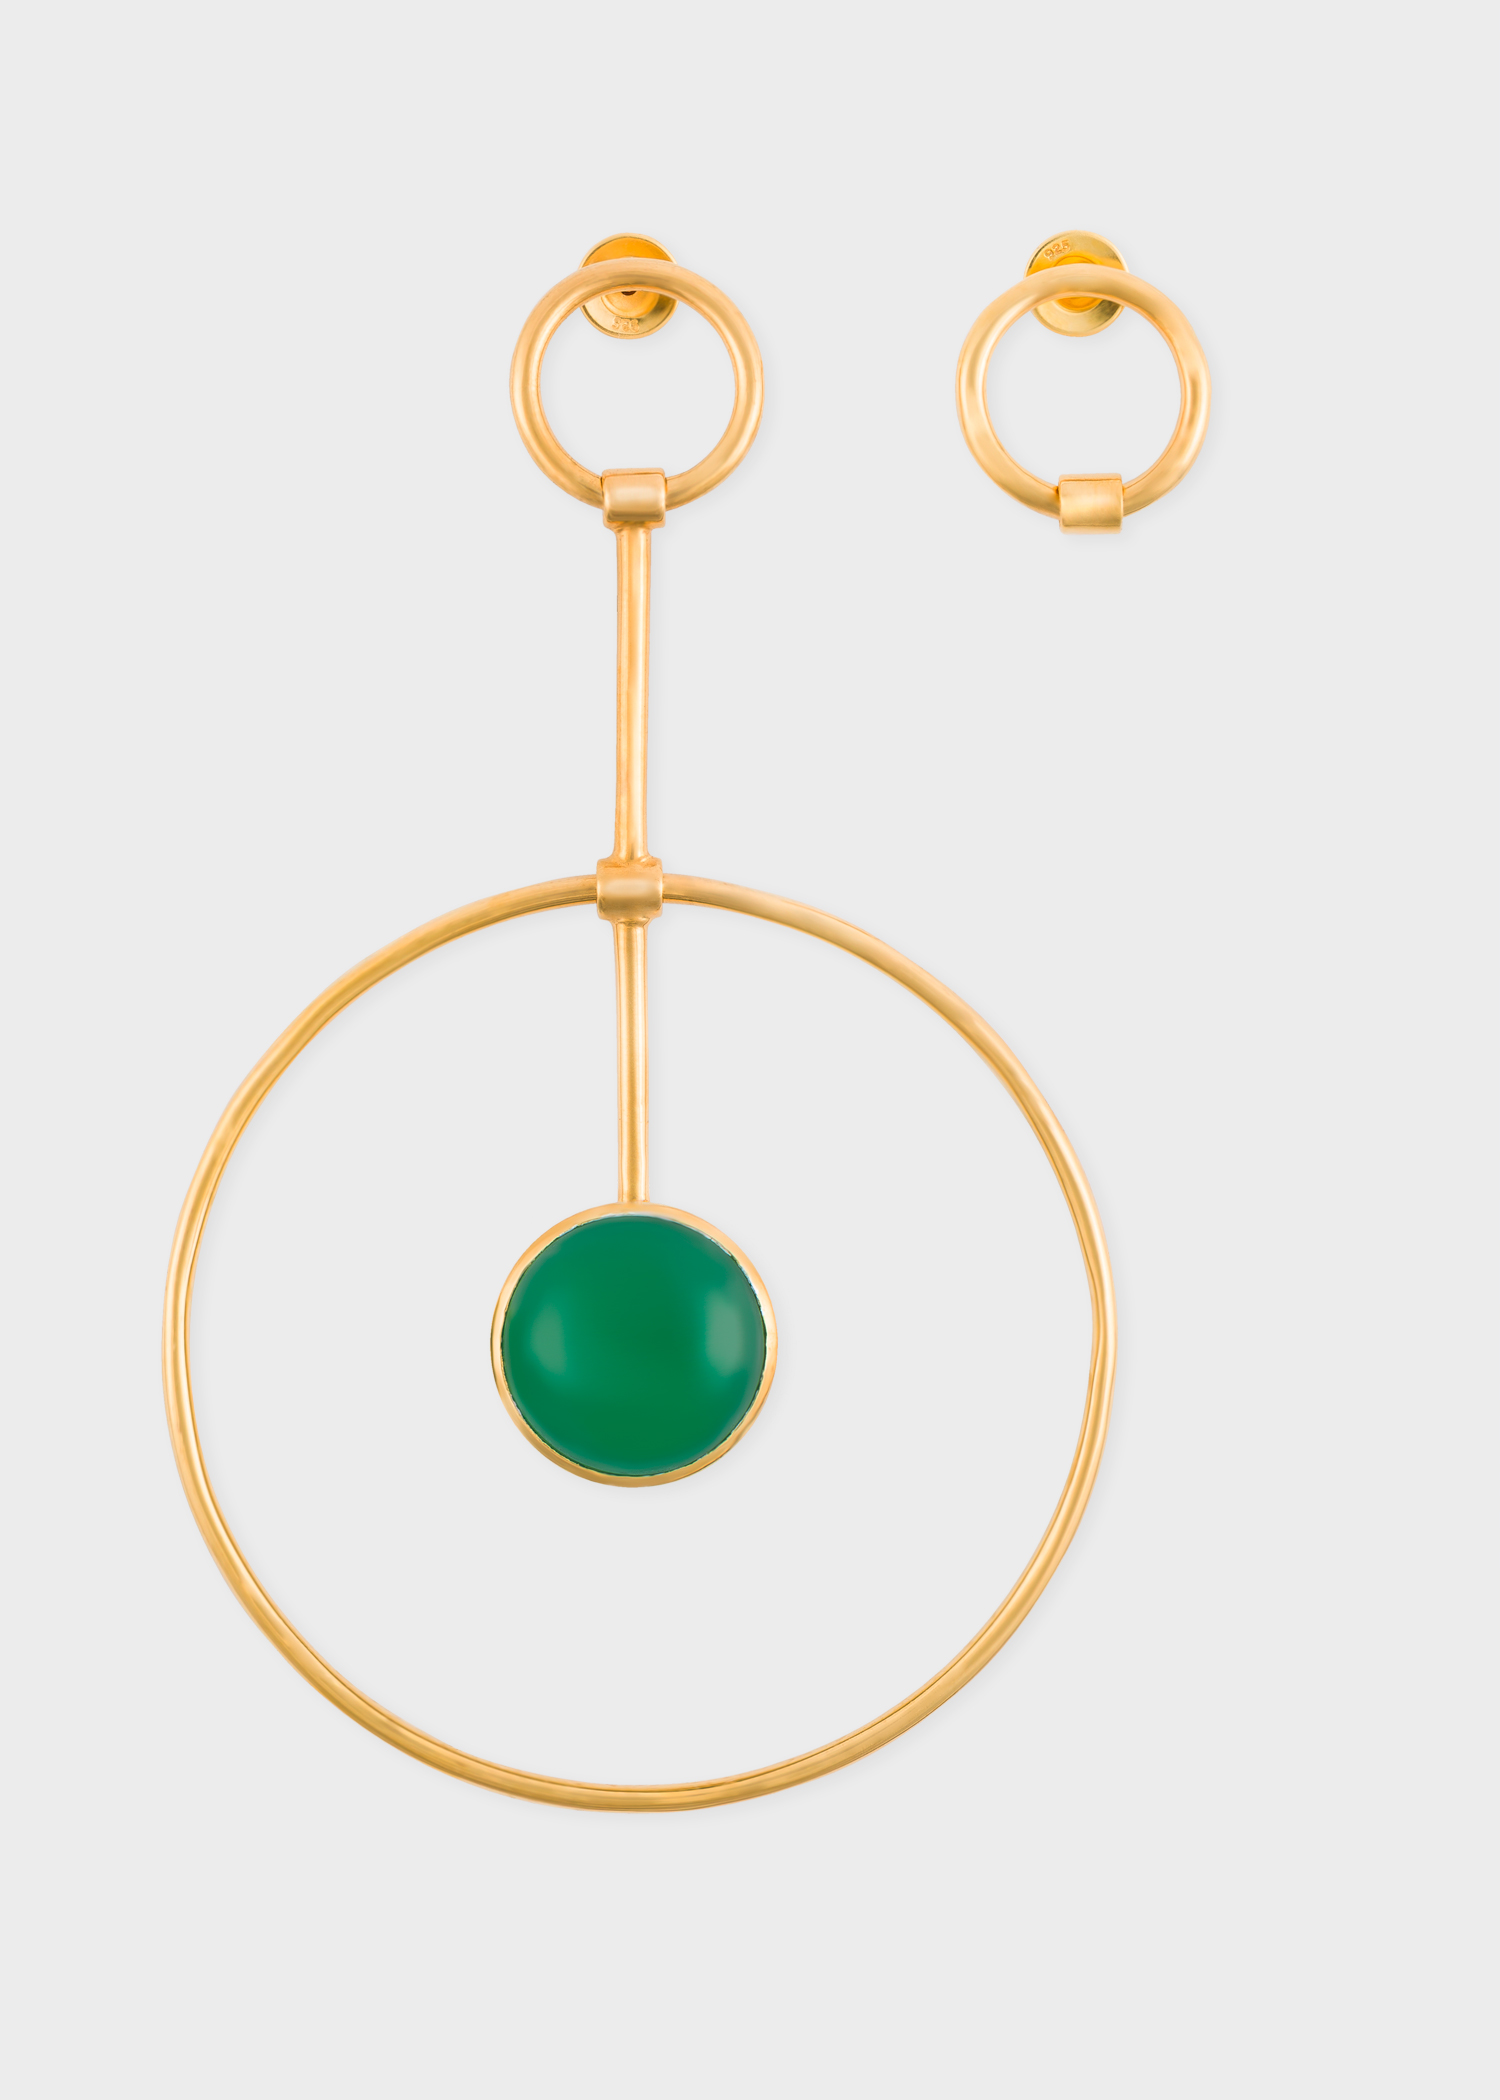 Paul Smith X Rachel Entwistle Gold Pendulum Loop Earrings With Green Onyx Stone